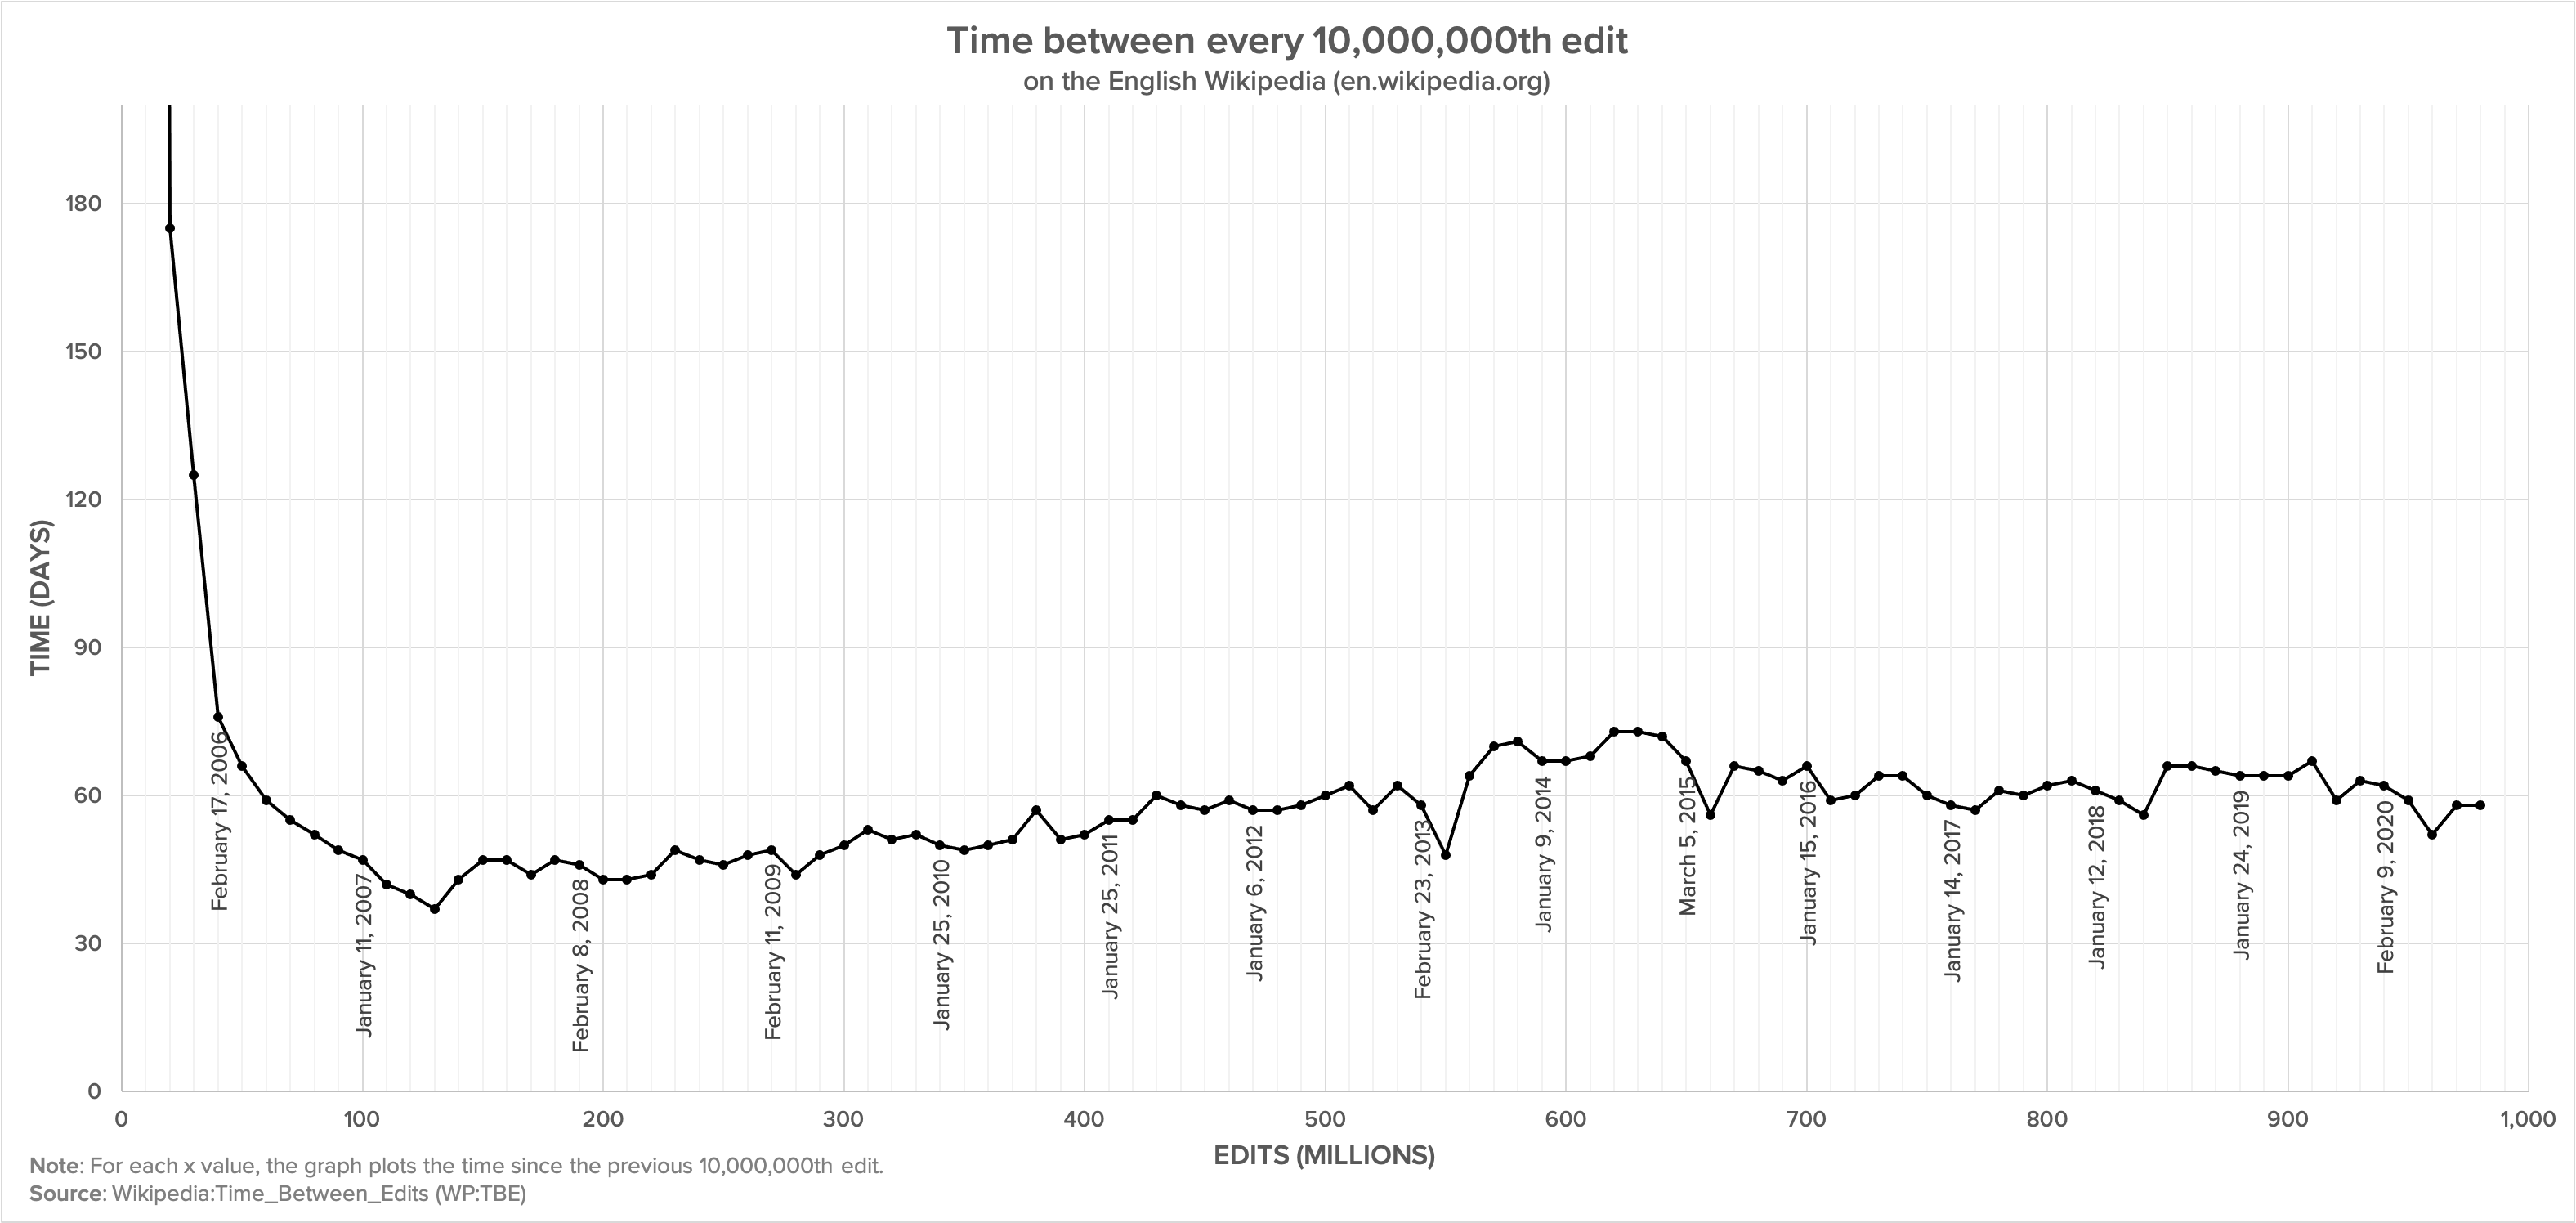 Number of days between every 10,000,000th edit from 2005 to 2012